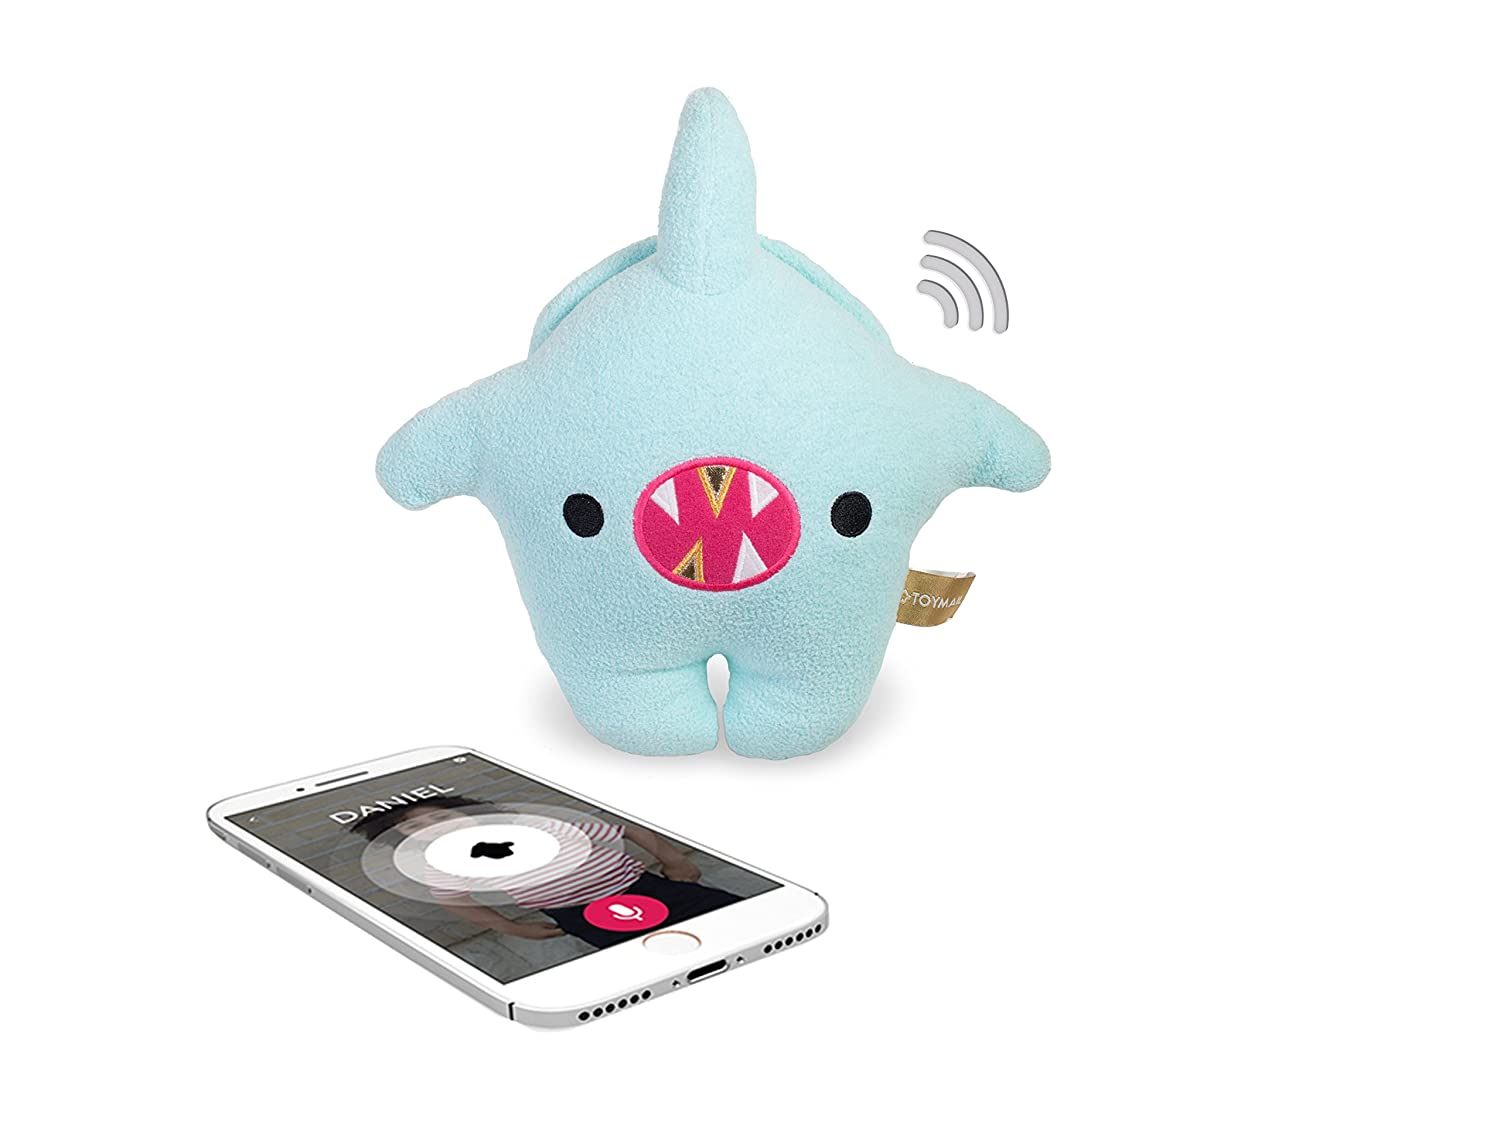 Toymail Talkie Shark Lets You Send Voice Messages from Your Phone (2-Way Phone to Toy)